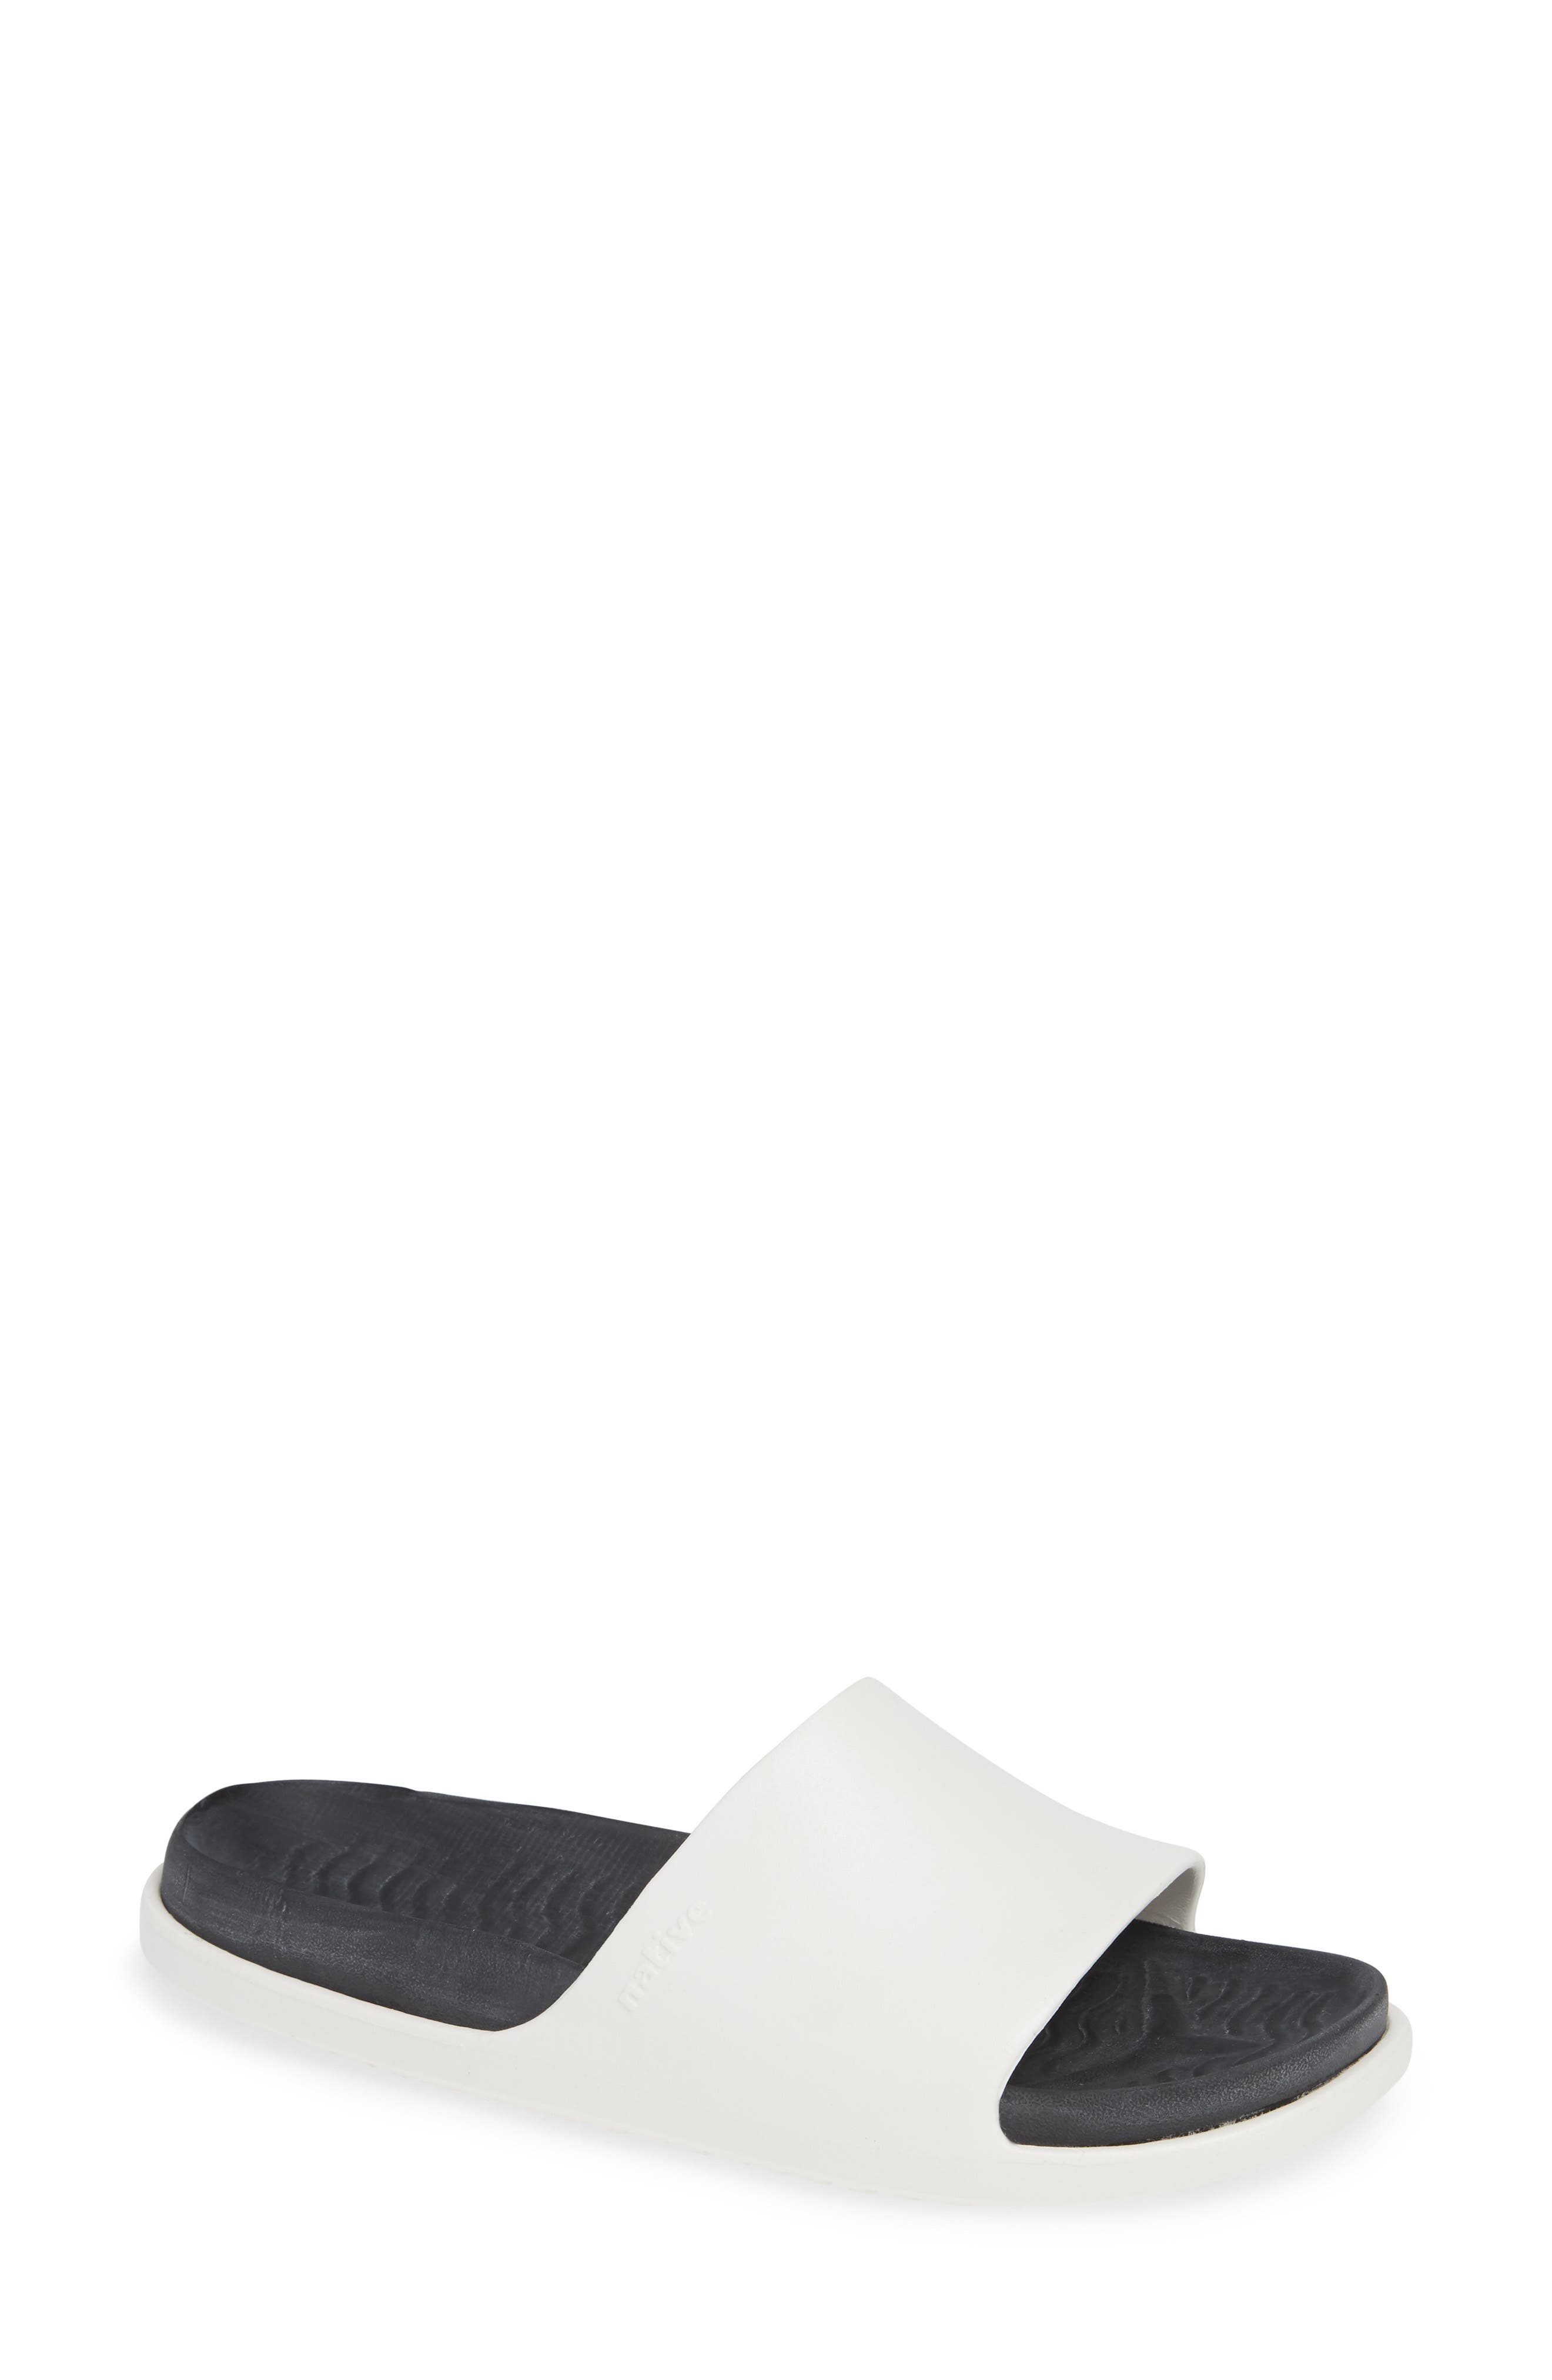 NATIVE SHOES Spencer LX Vegan Sport Slide Sandal, Main, color, 107